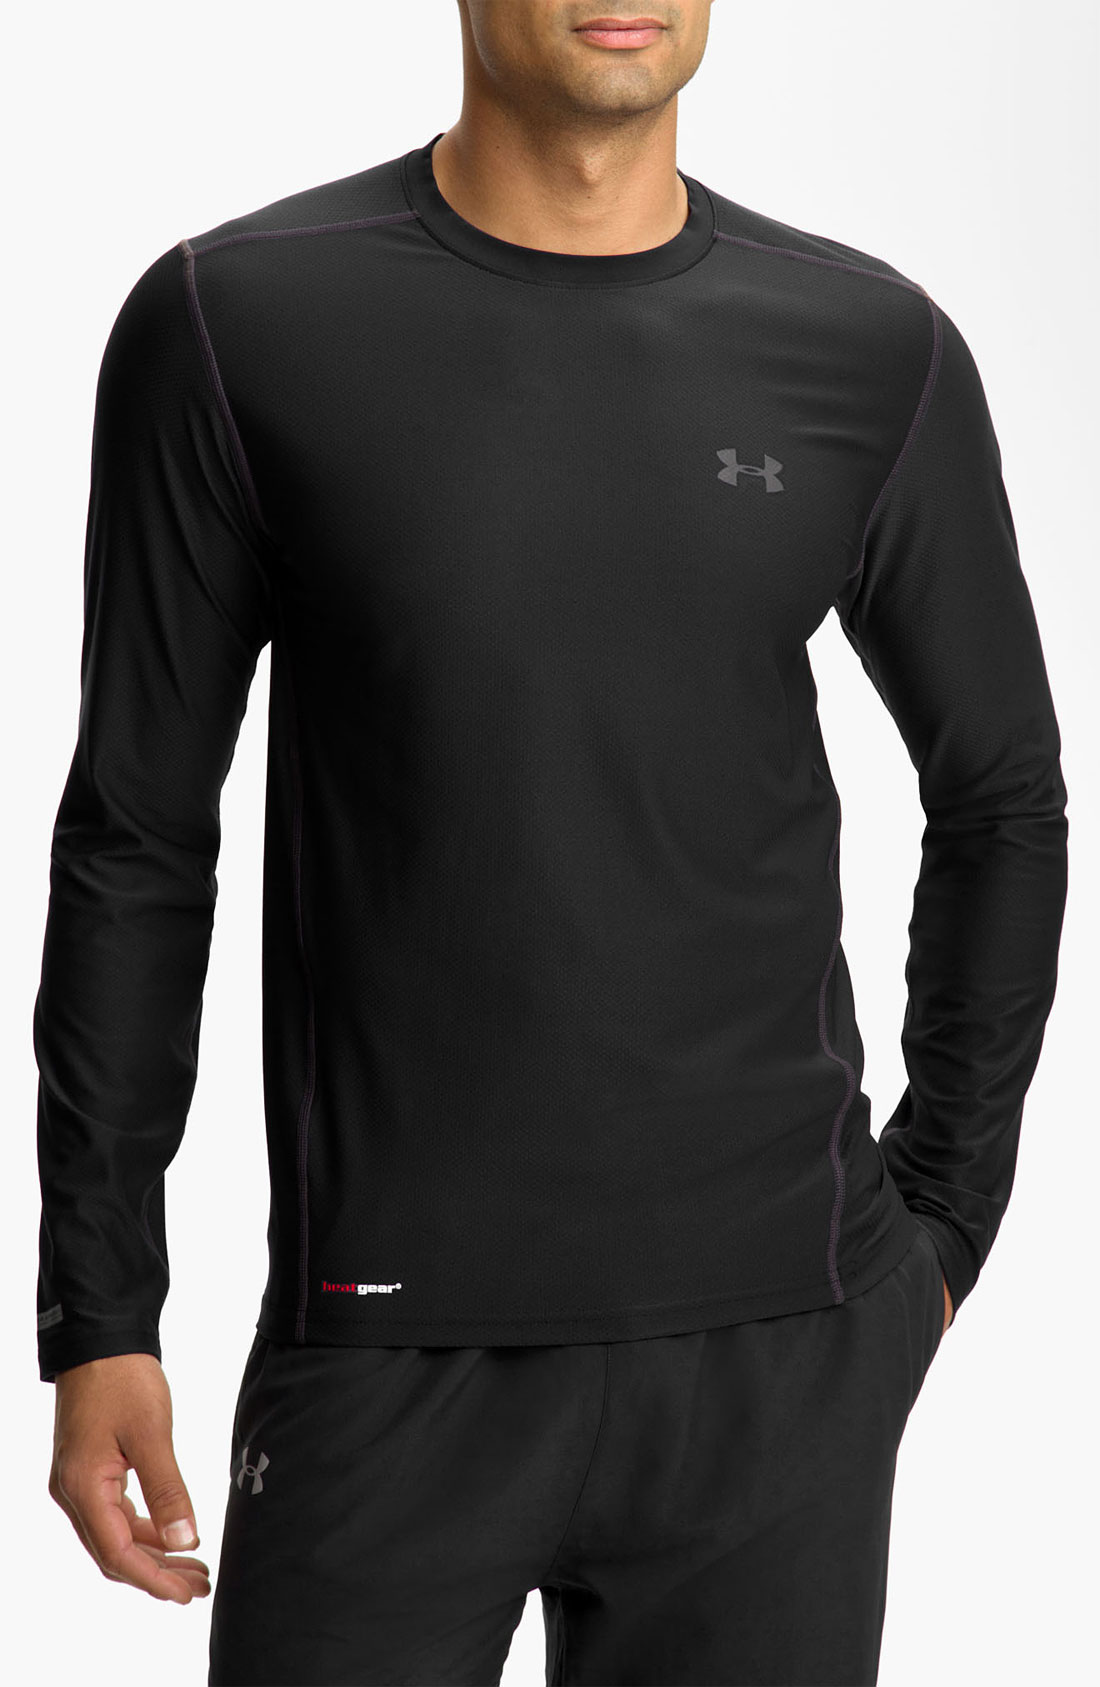 Under Armour Heatgear Fitted Long Sleeve Tshirt In Black